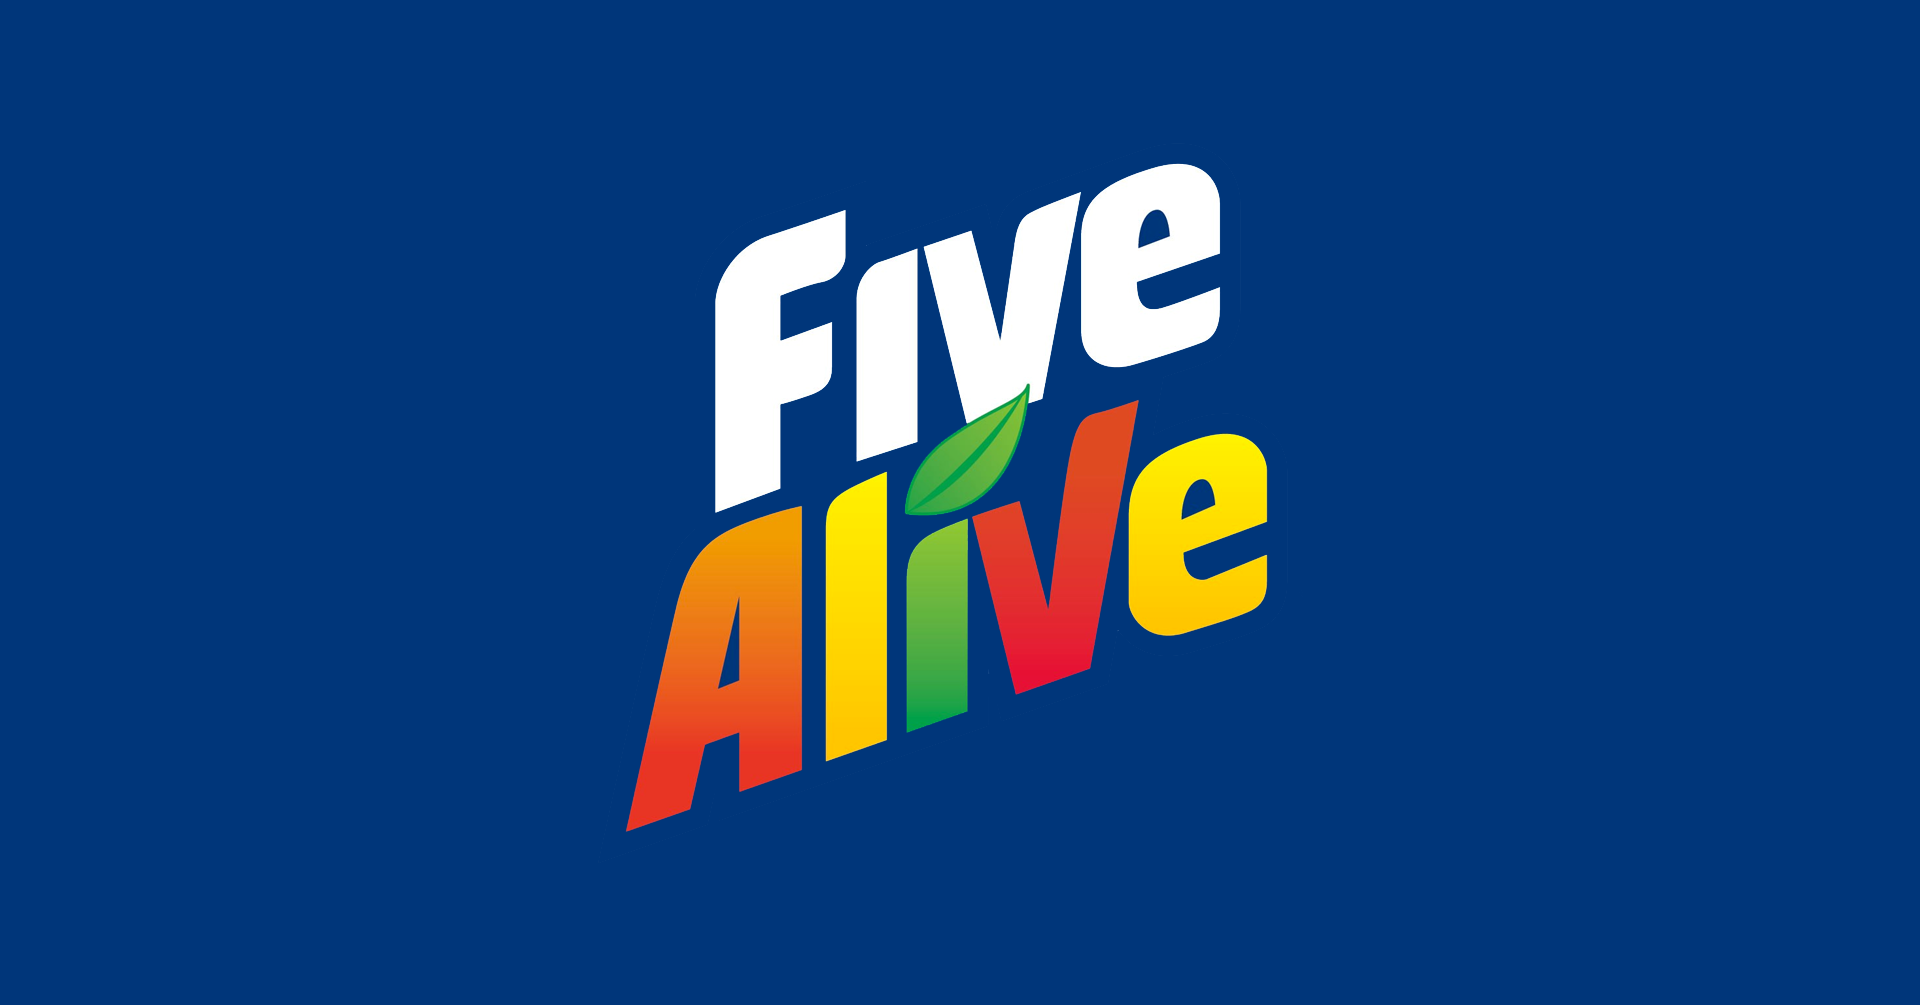 Five Alive / Super Crazy Alive